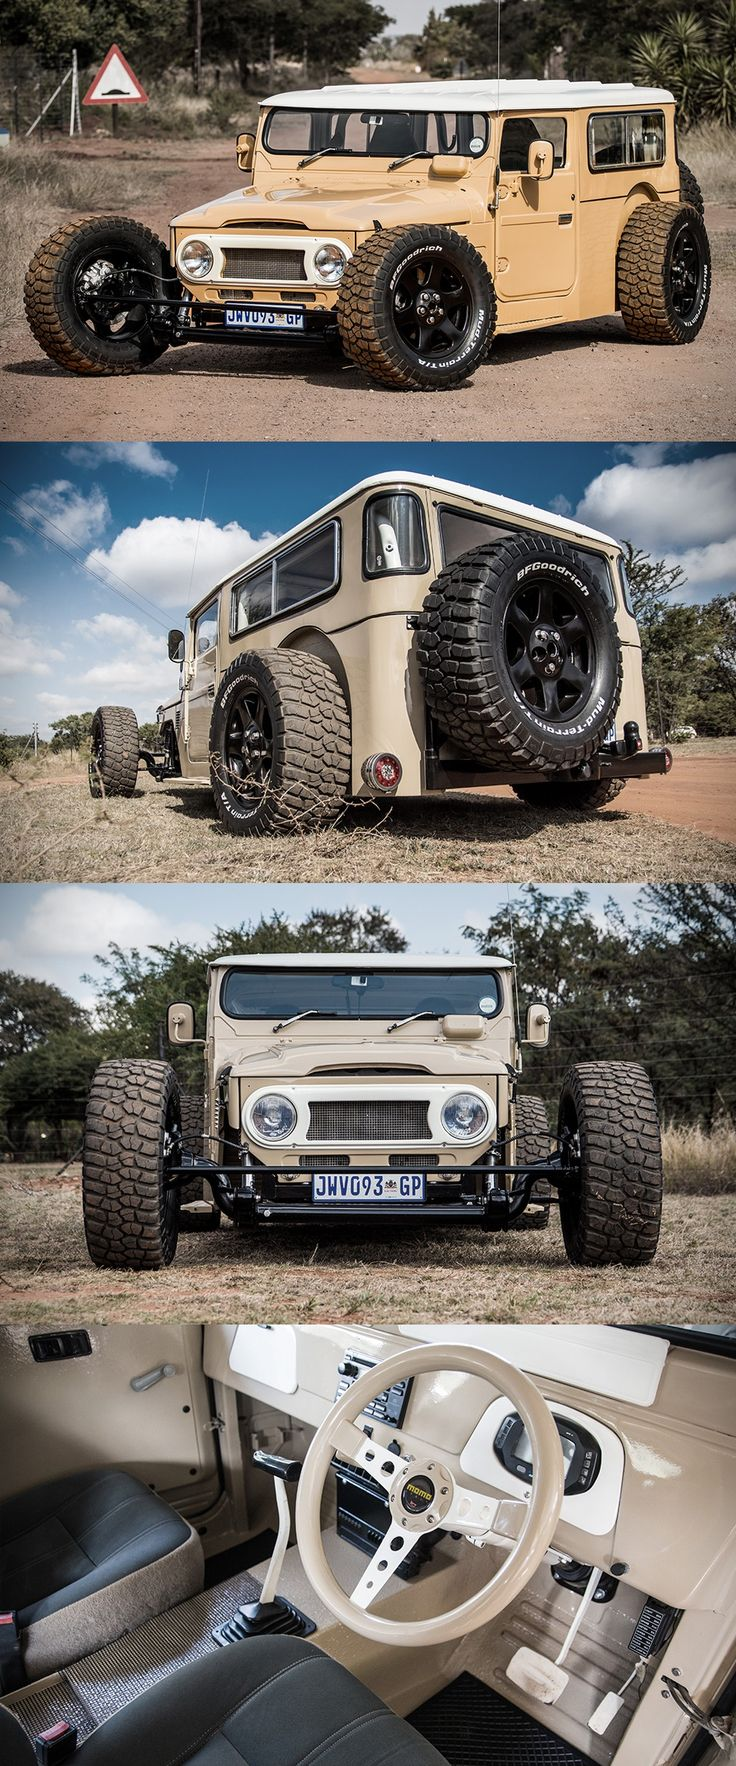 1976 Land Cruiser FJ40 Hot Rod                                                                                                                                                                                 More